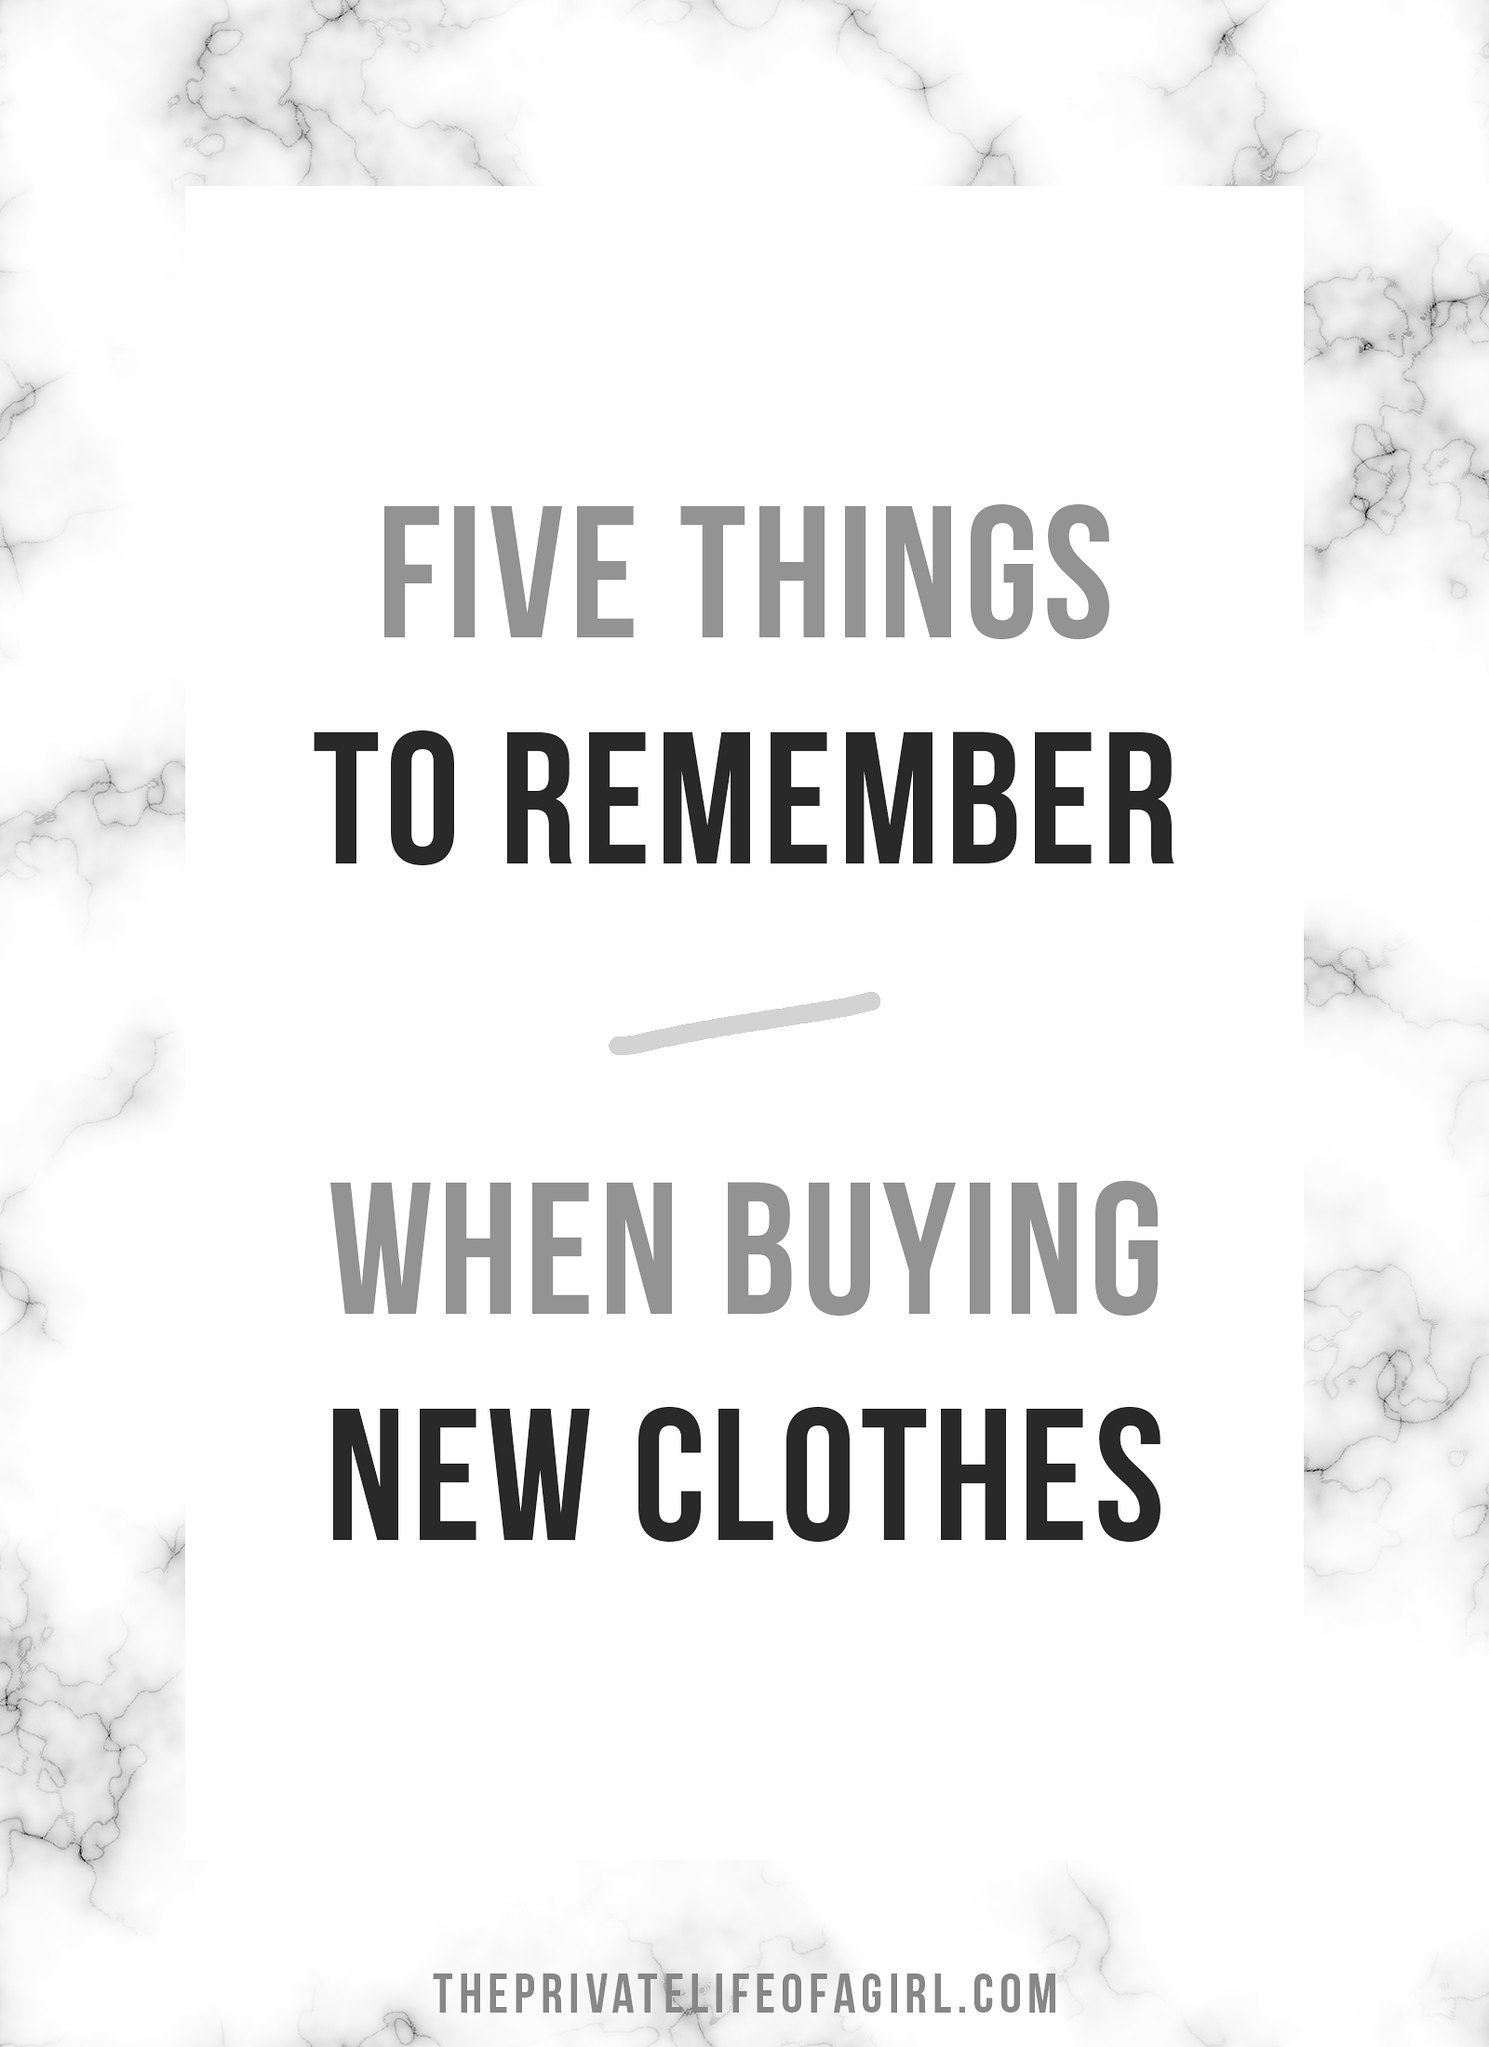 5 Things to Remember When Buying New Clothes